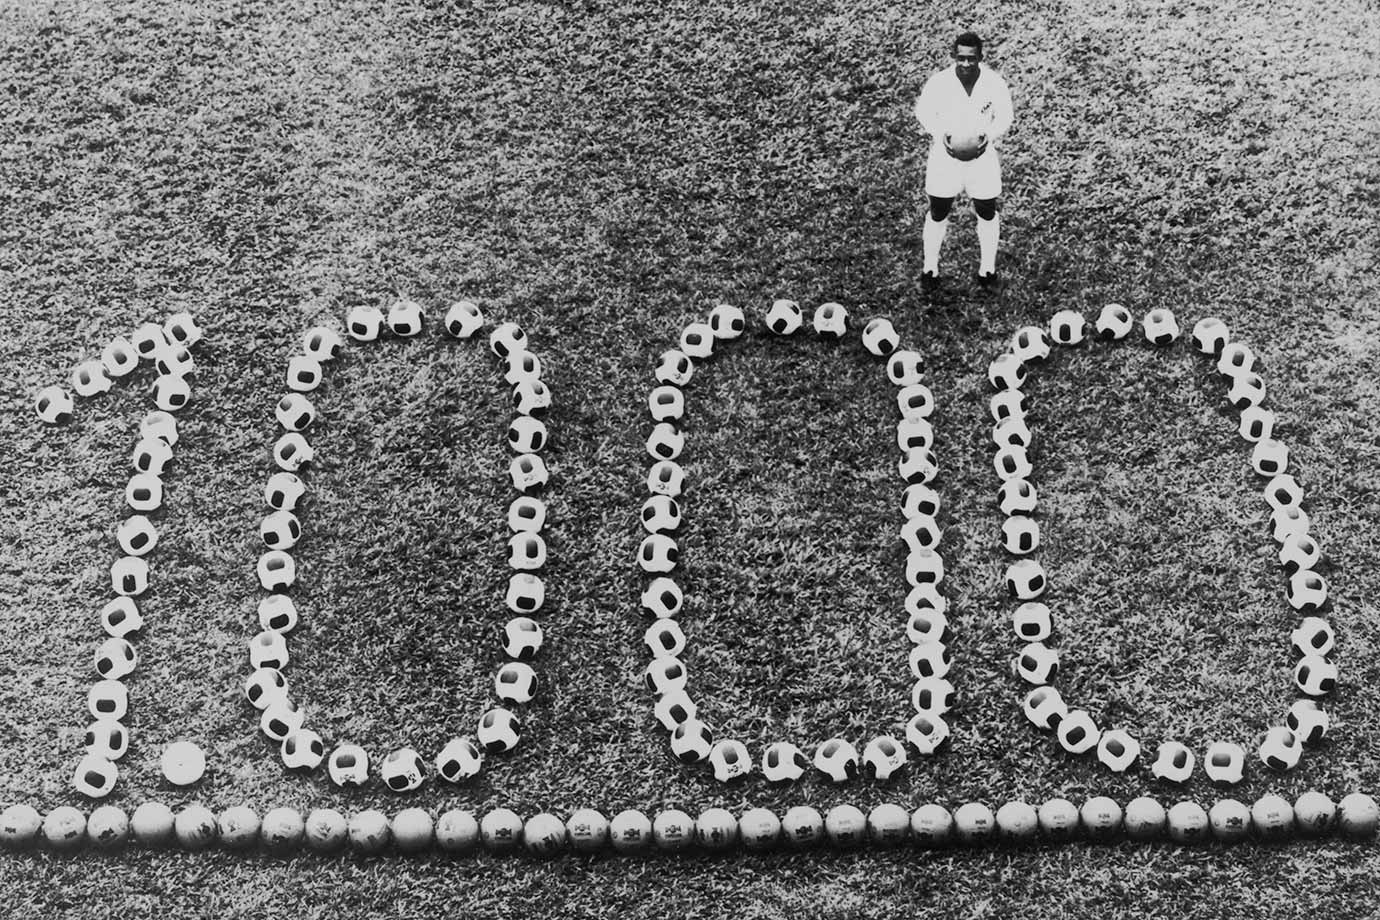 Pelé stands among a display to recognize his 1,000th professional goal on Dec. 14, 1969. He finished with 1,281 goals — making him the top scorer of all time.